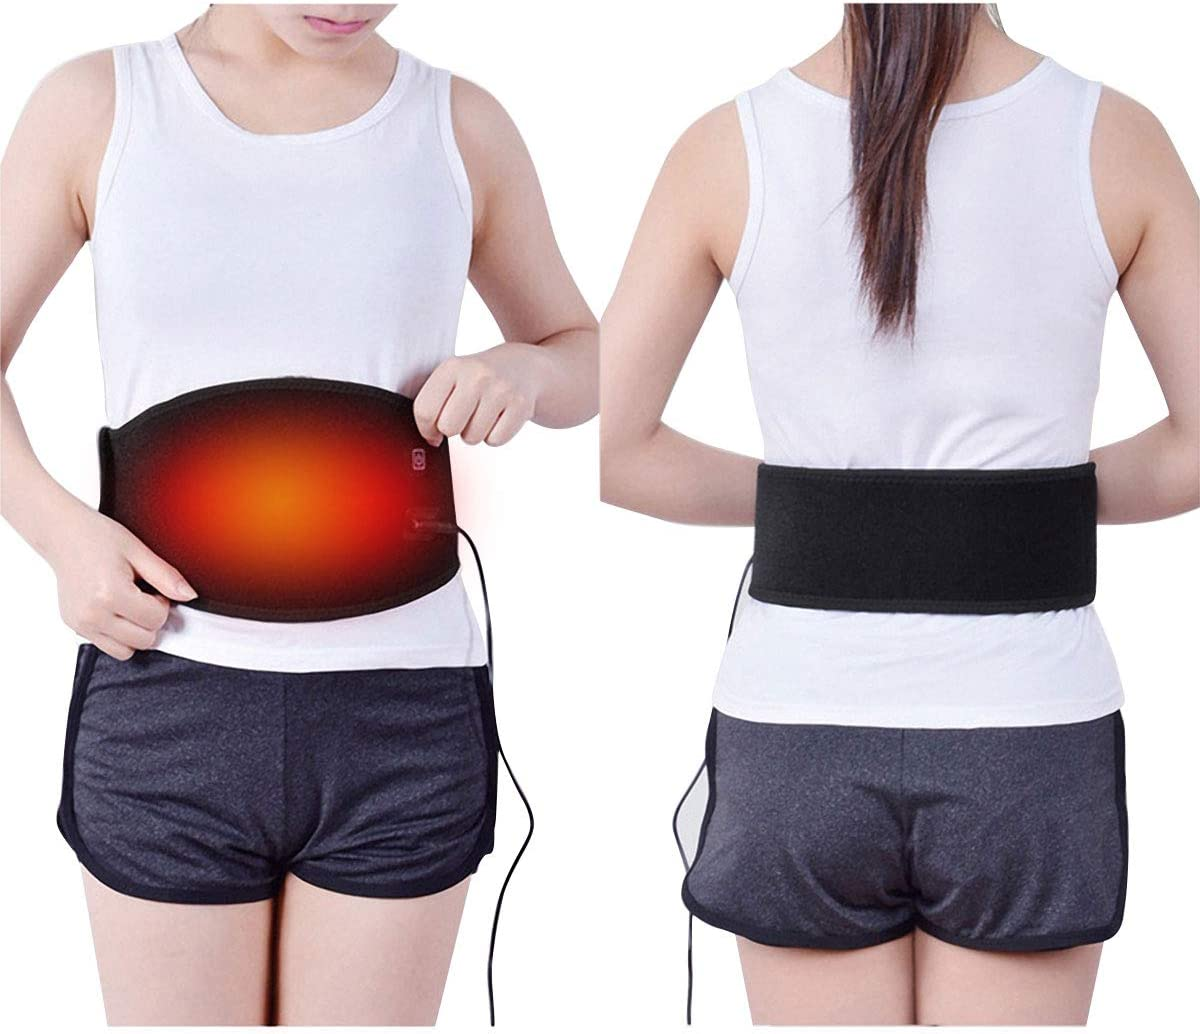 Waist Heat Belt, Electric Heating Pad Waist Support for Lower Back Arthritis, Strain, Stiffness, Lumbar Spine Pain Relief, 3 Settings Heat Therapy Band Belly Warm Wrap for Abdominal Menstrual Cramps